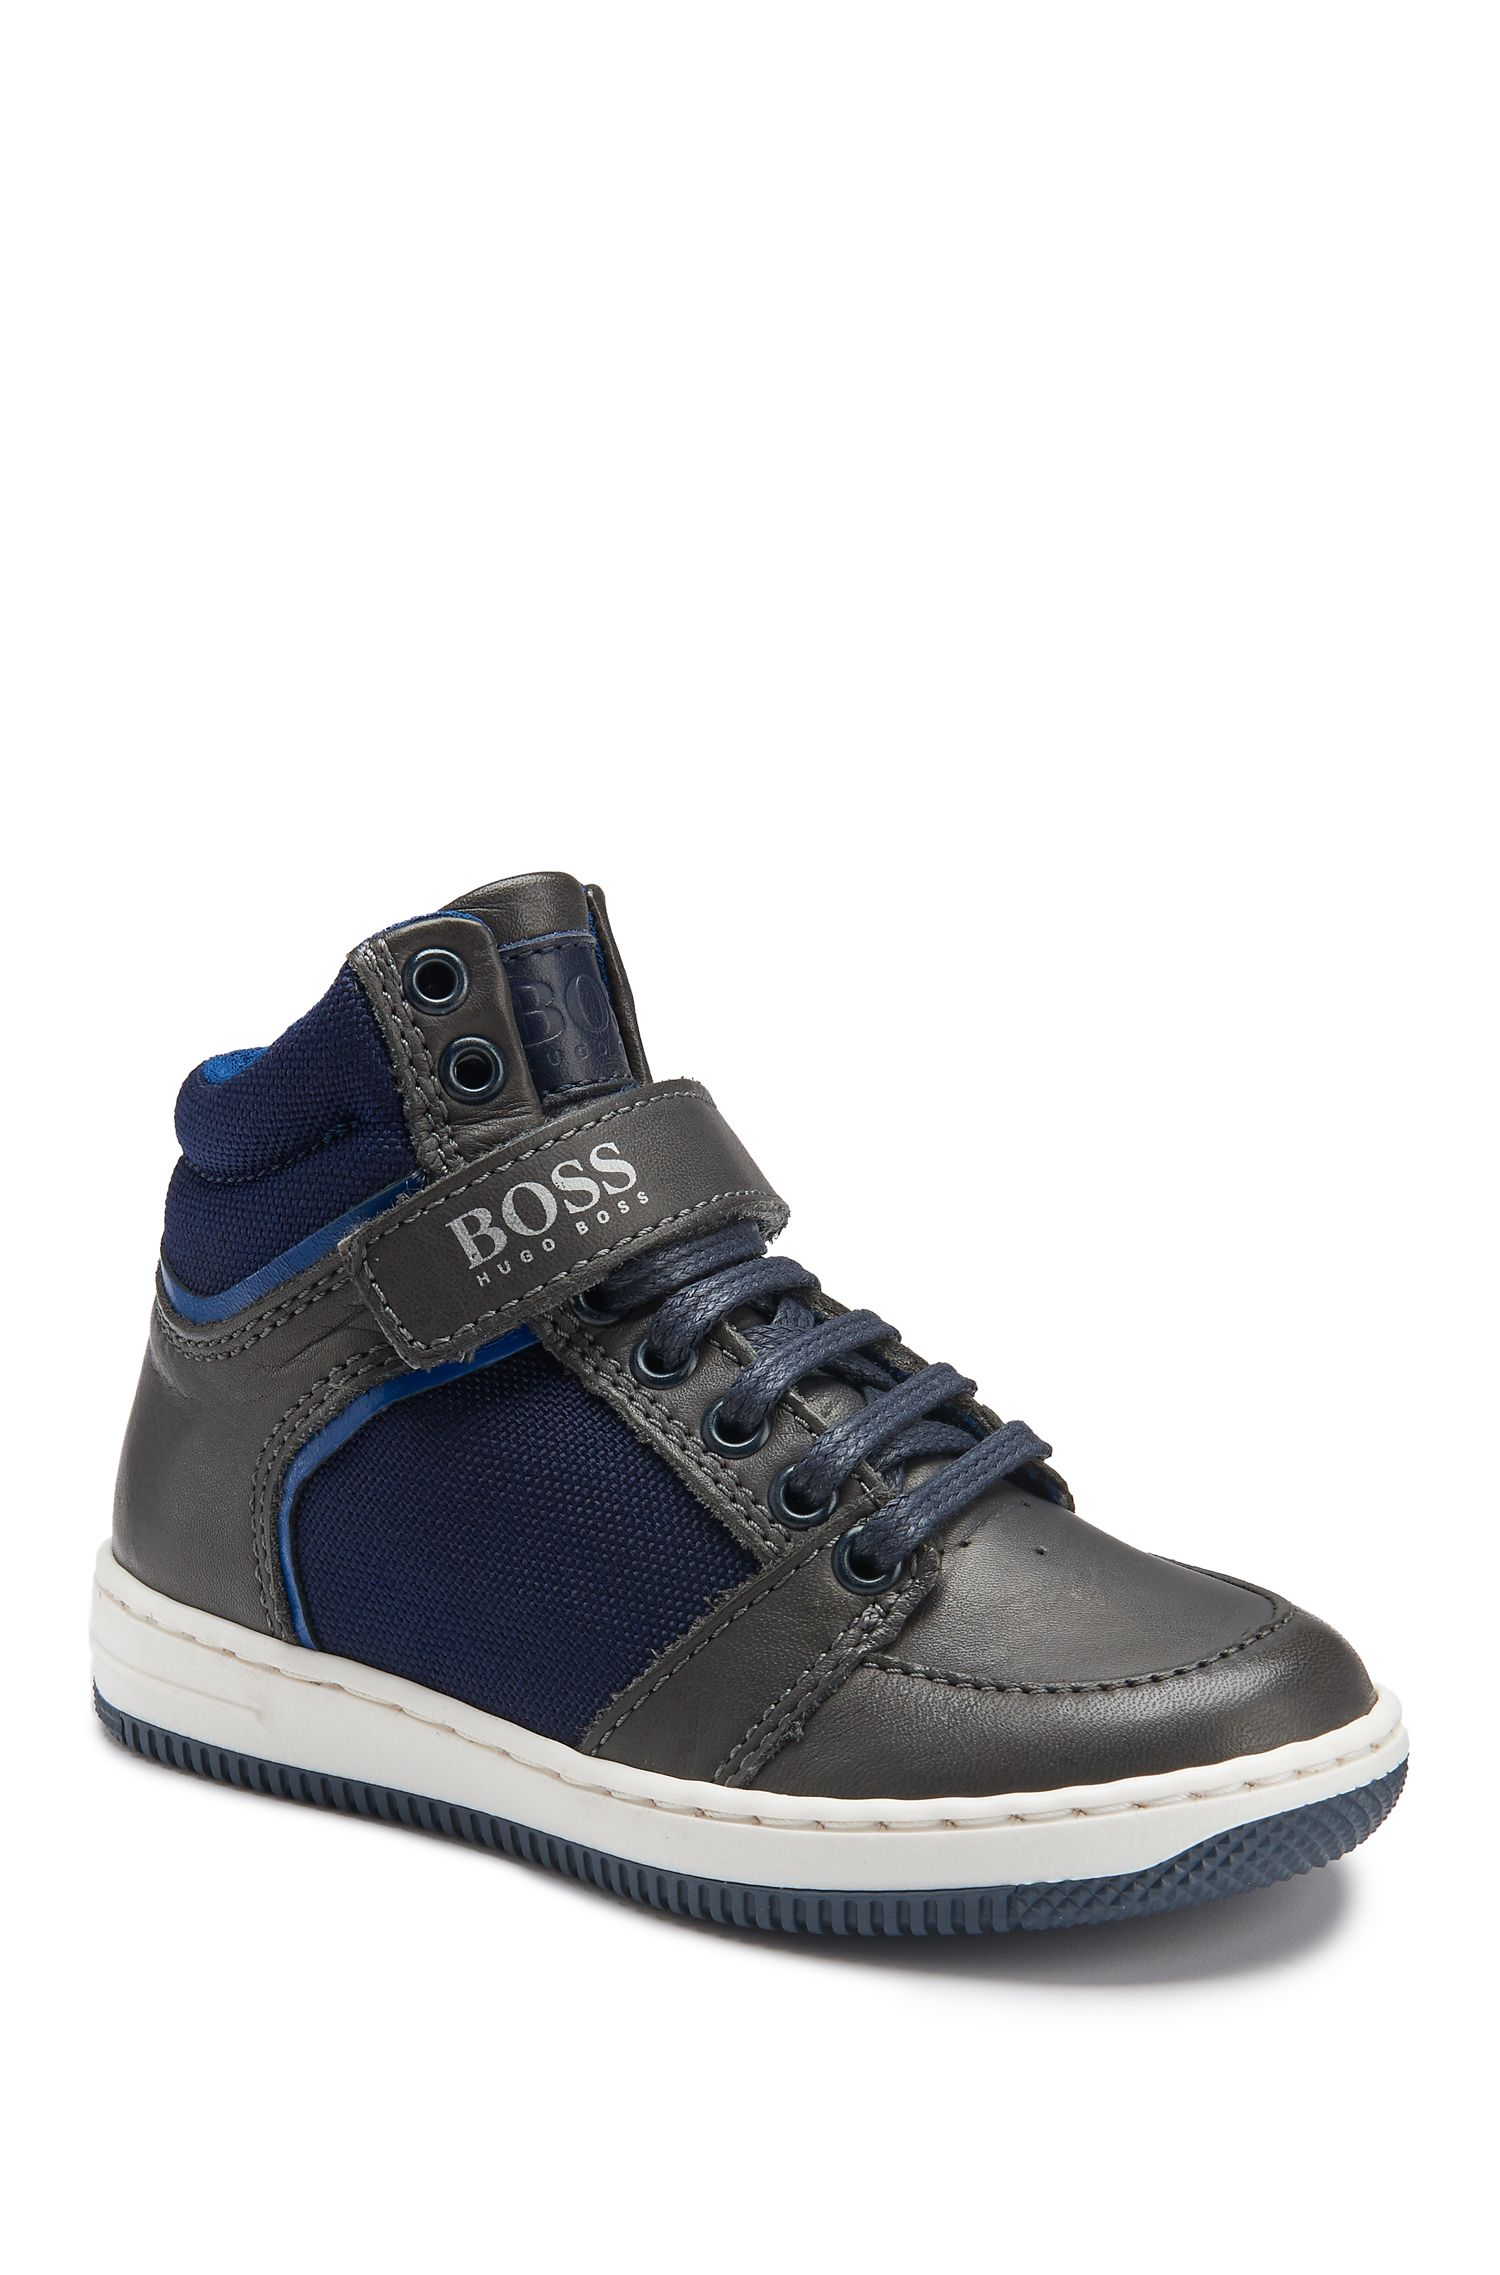 Kids' High Top Leather Sneakers | J29123, Dark Blue